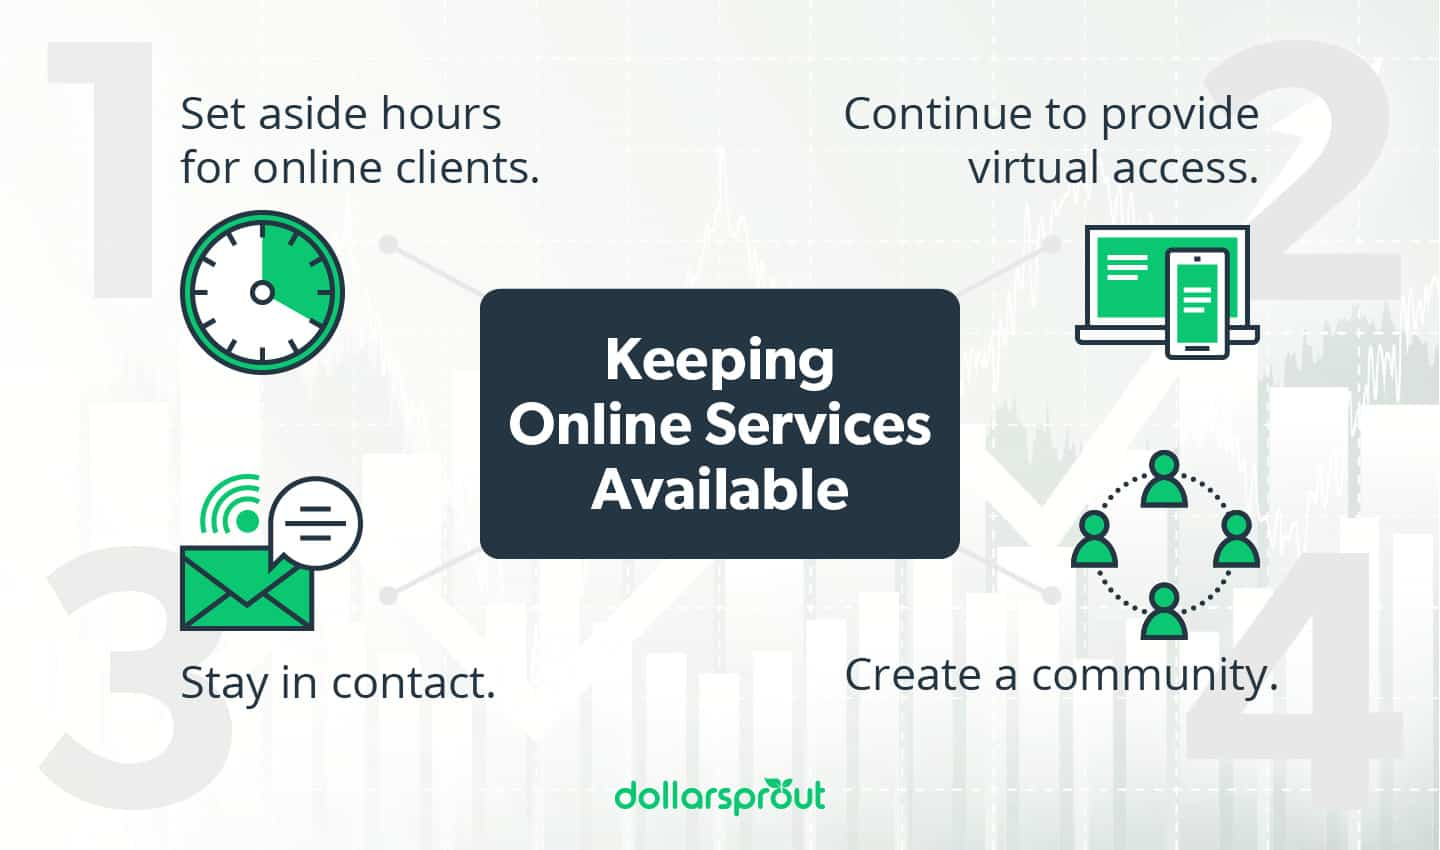 Keeping online services available